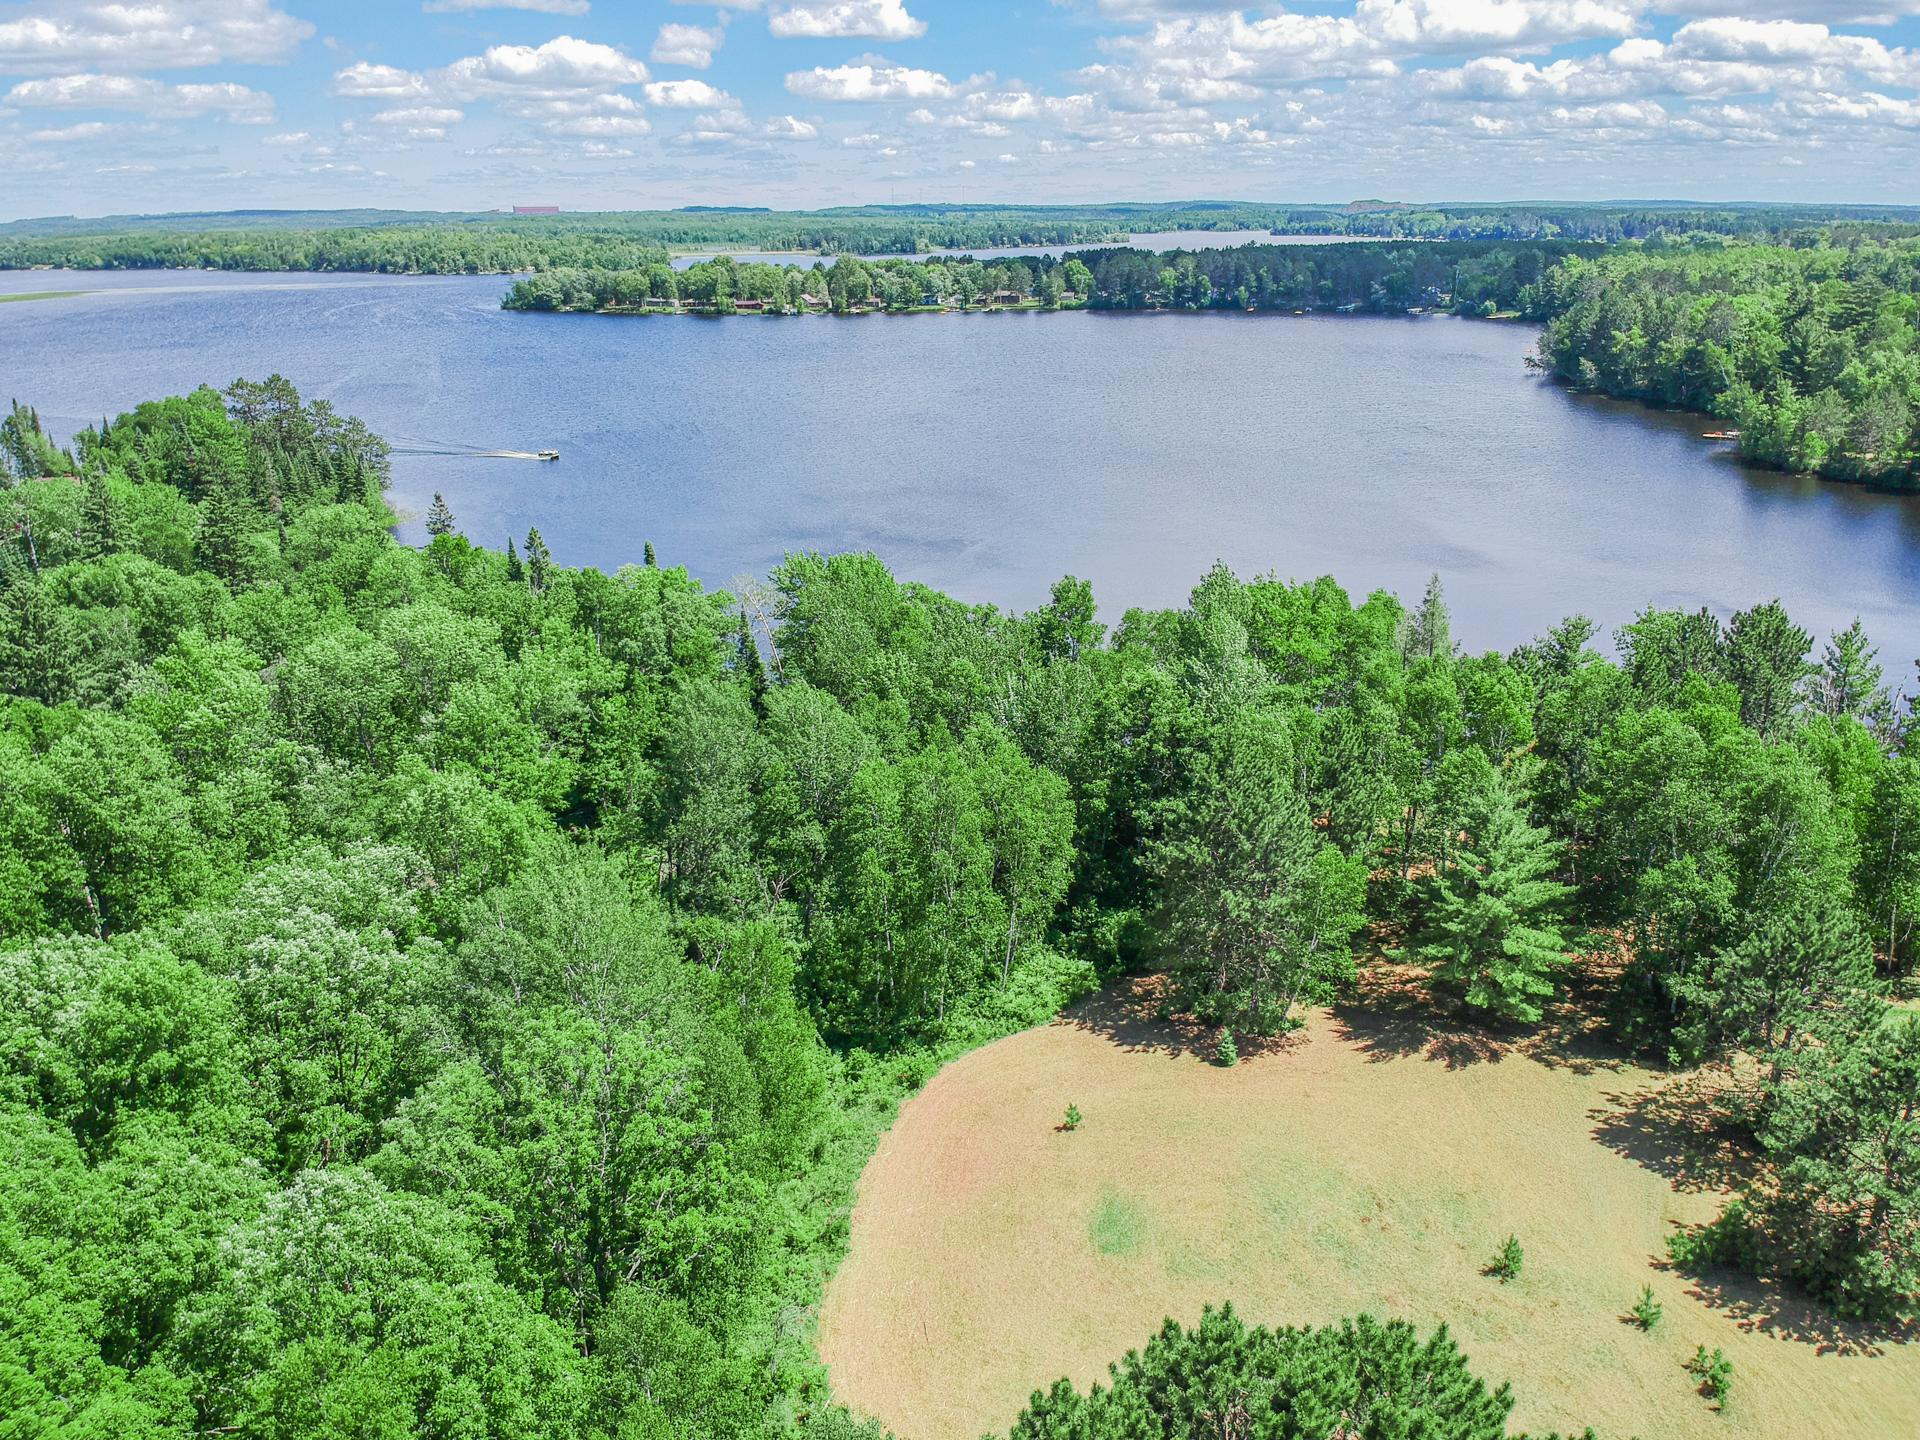 TBD-Lot 4 Sky West Trail Property Photo